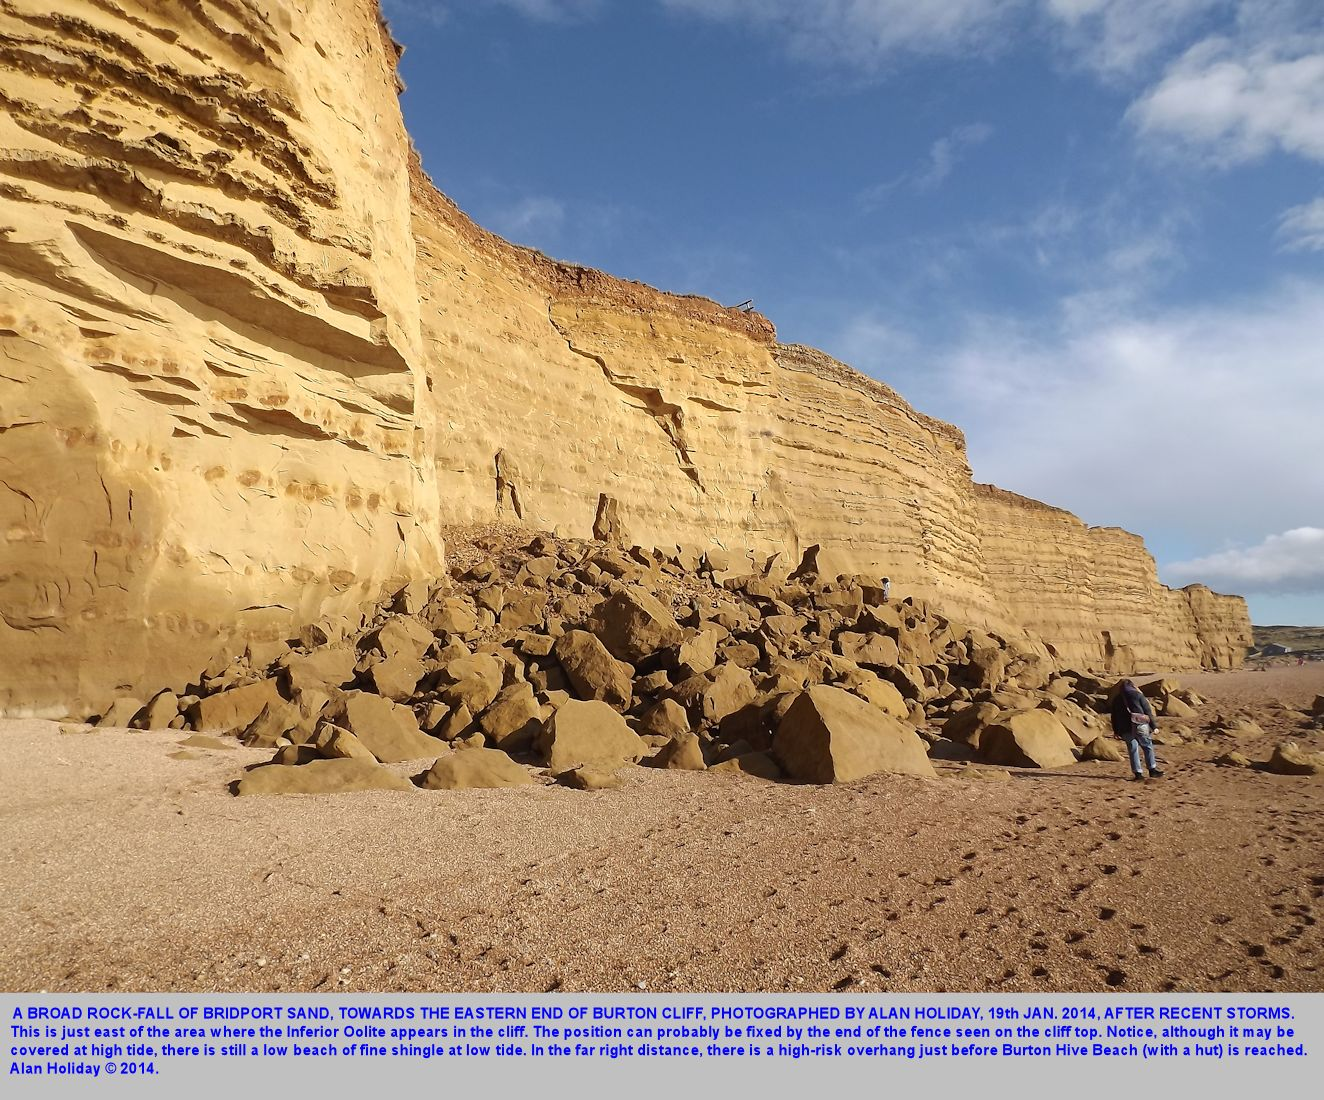 A view of the broad Bridport Sand rock-fall towards the eastern end of Burton Cliff, Burton Bradstock, Dorset, 19th January 2014, photographed by Alan Holiday